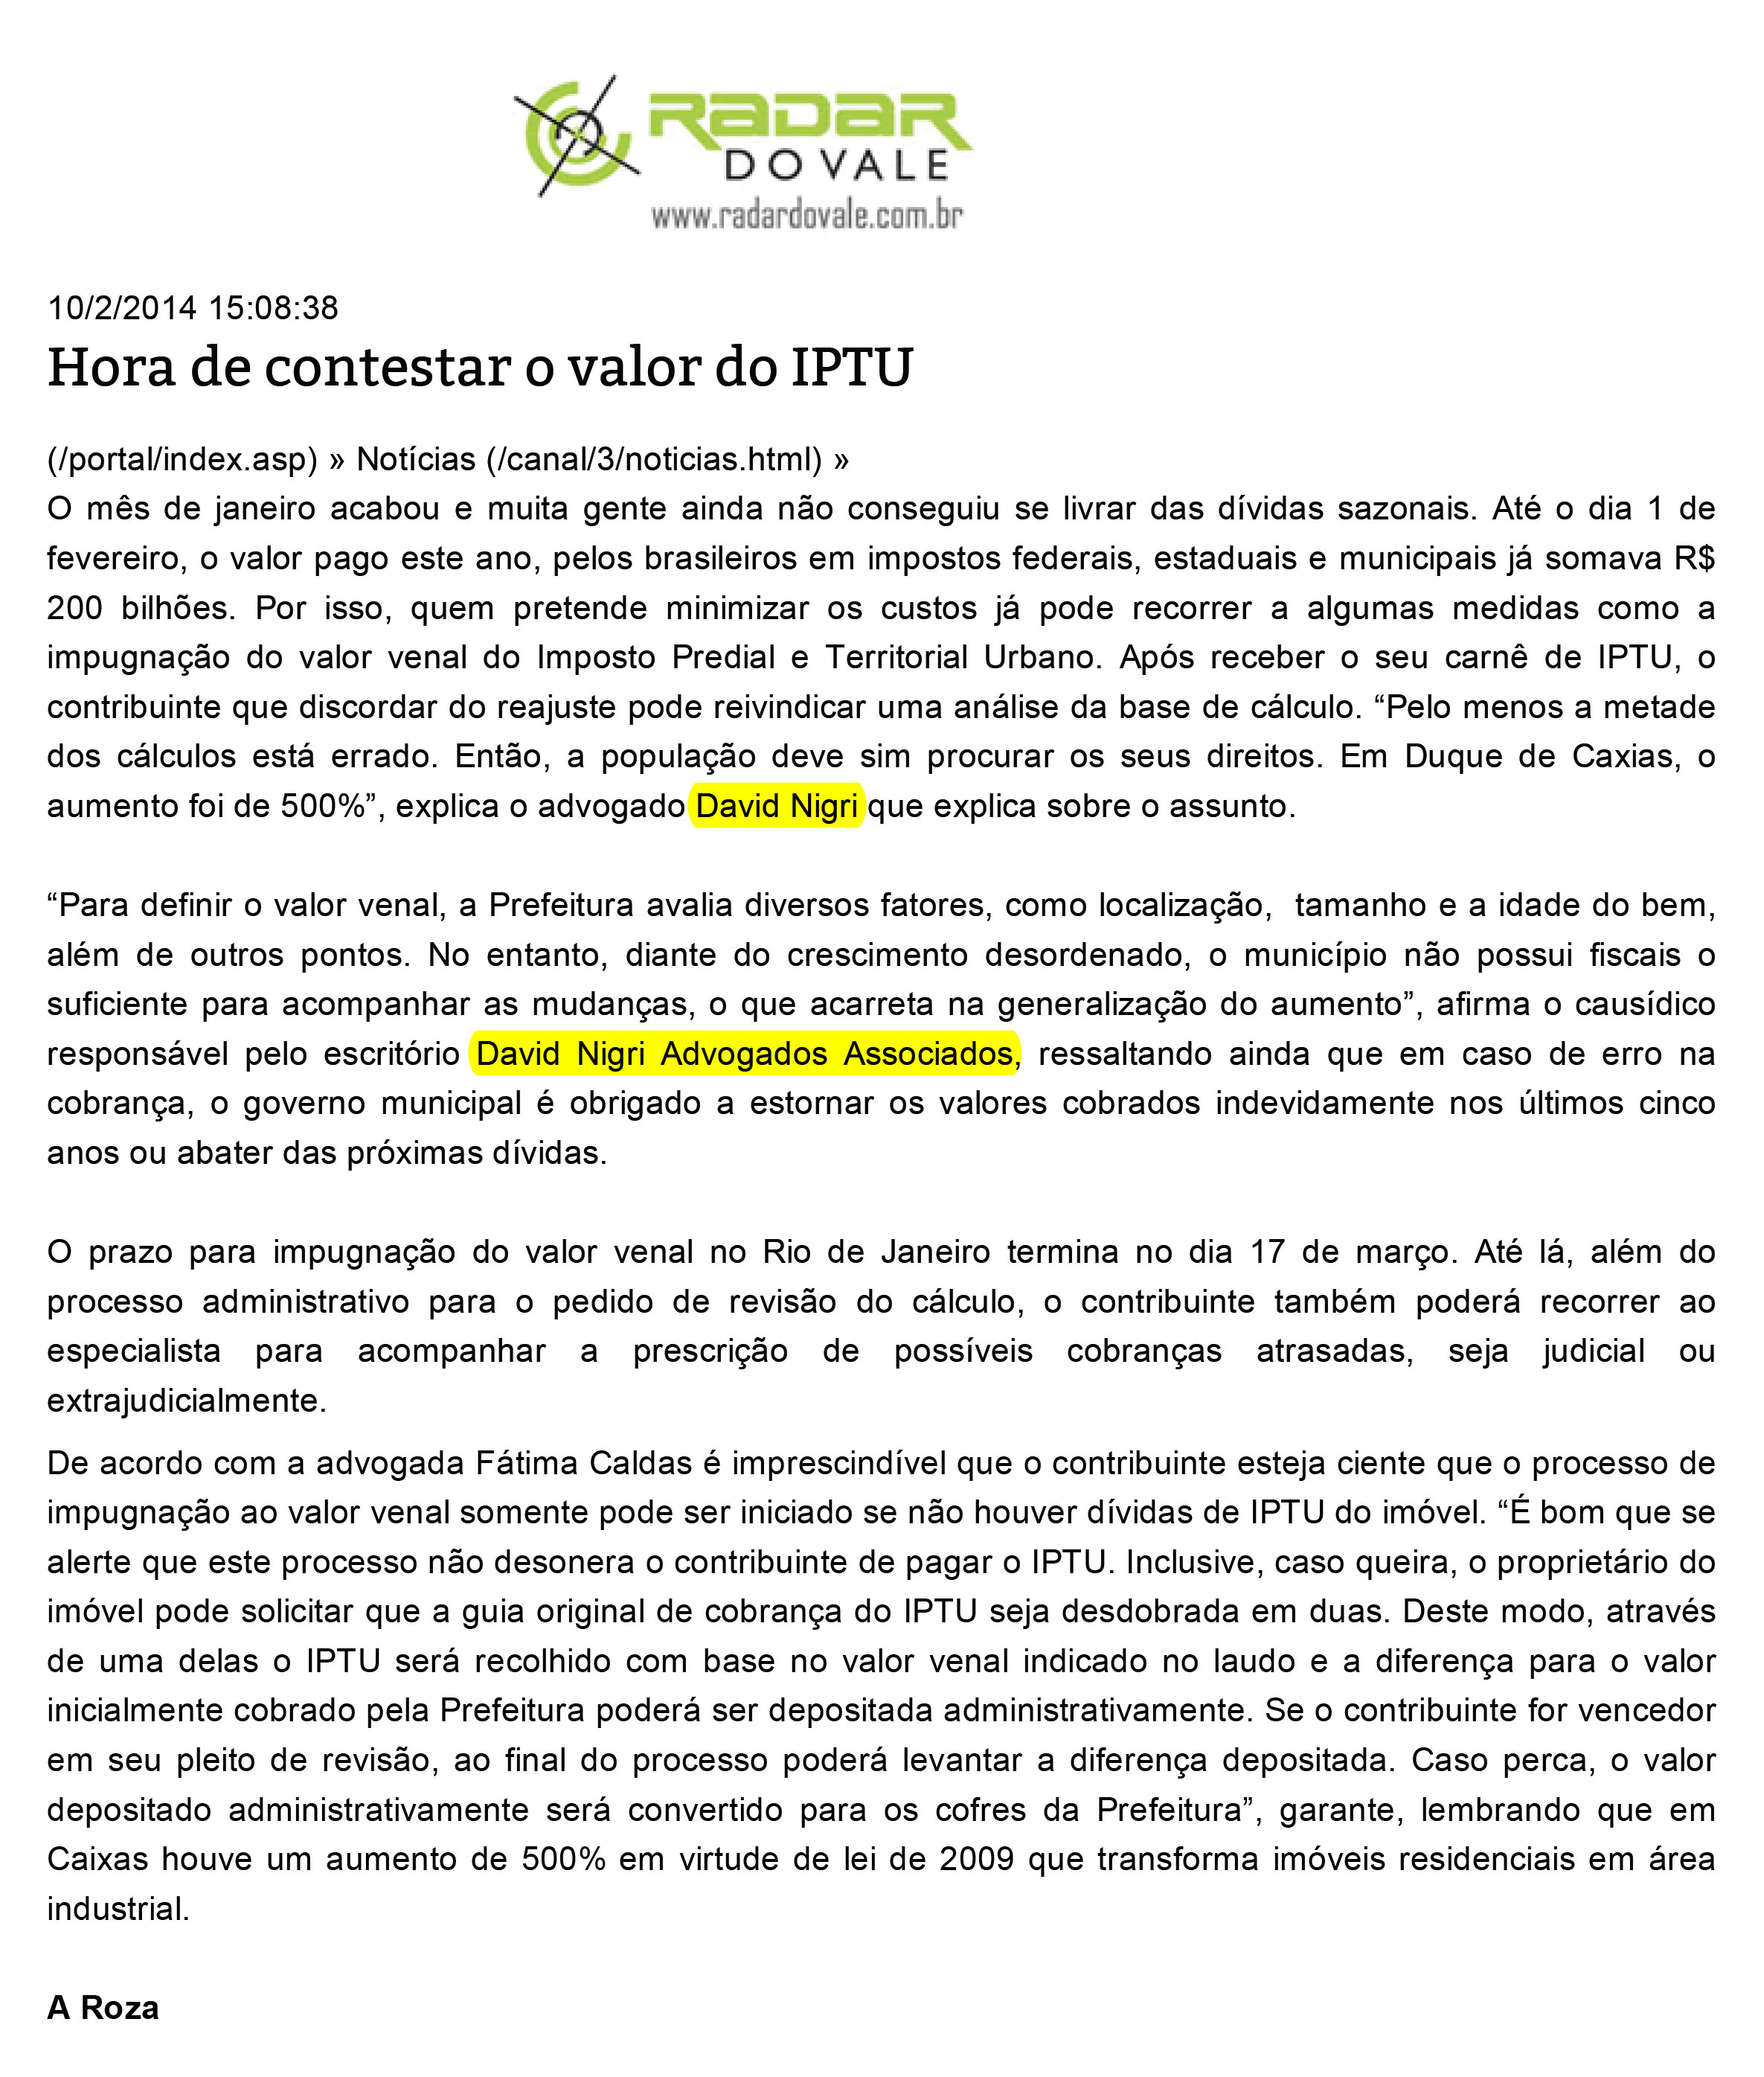 Hora-de-contestar-o-valor-do-IPTU-RADAR-DO-VALE